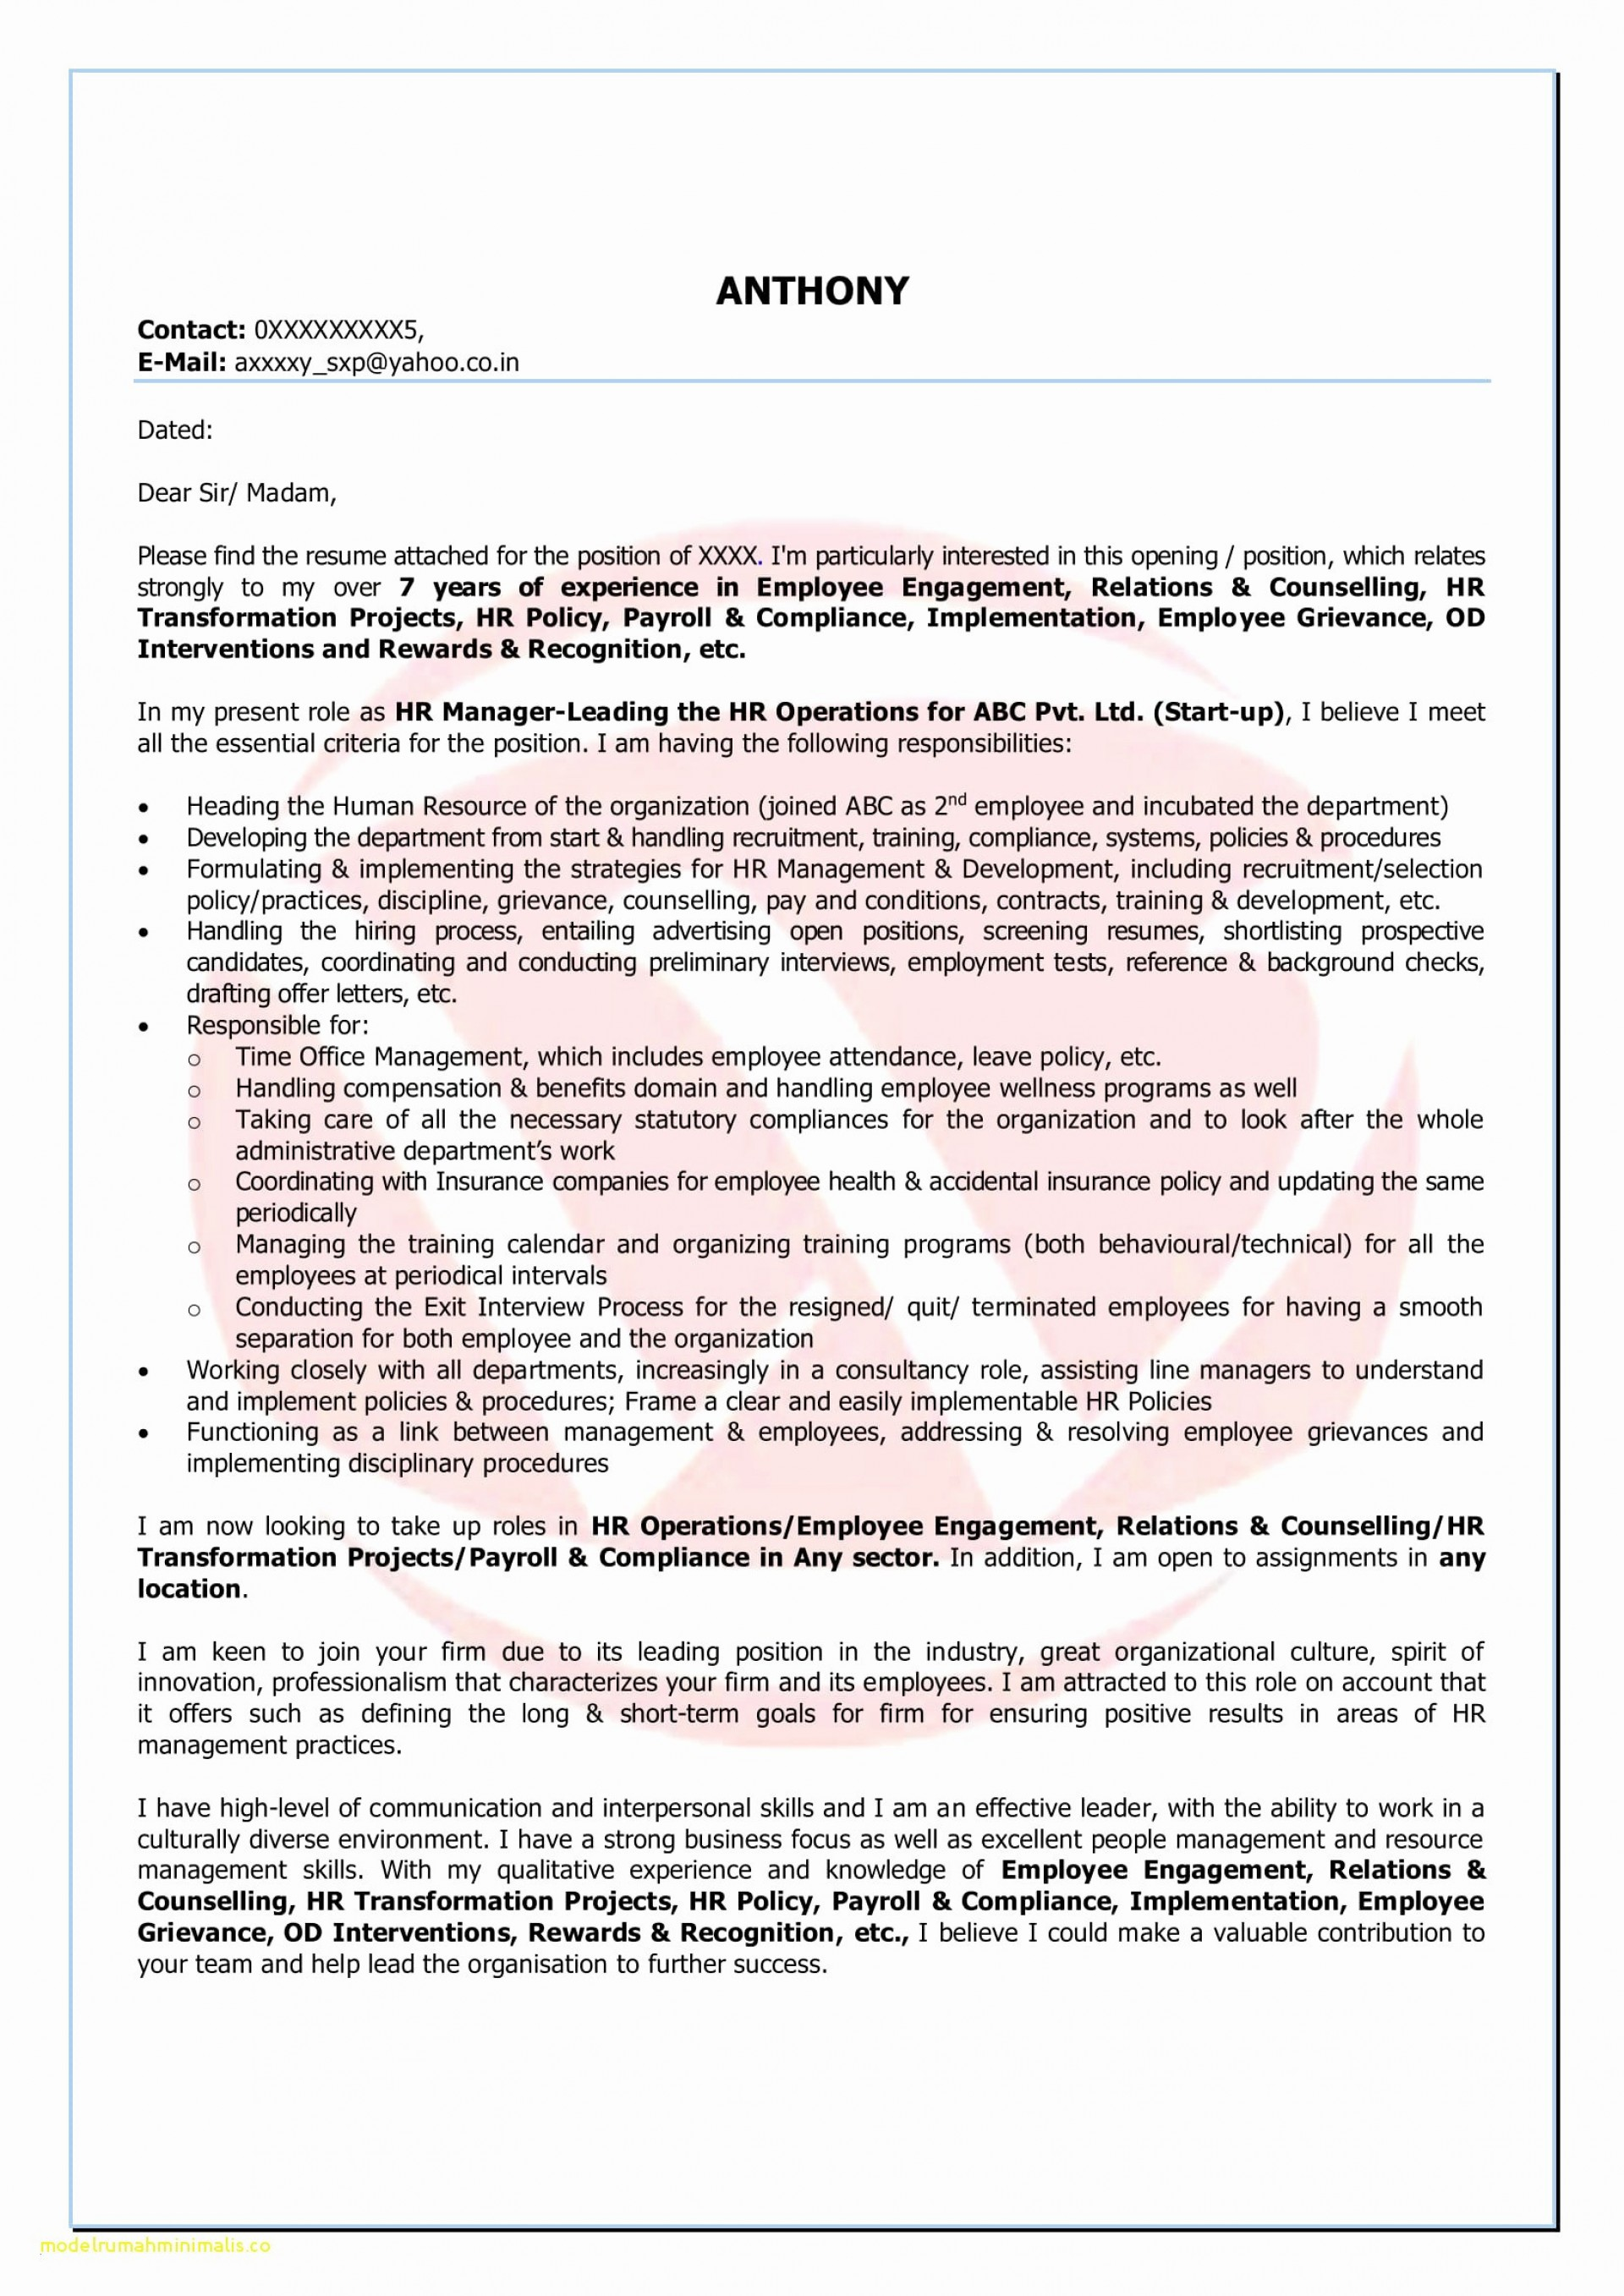 005 Biology Research Paper Example Luxury Sample Resume Real